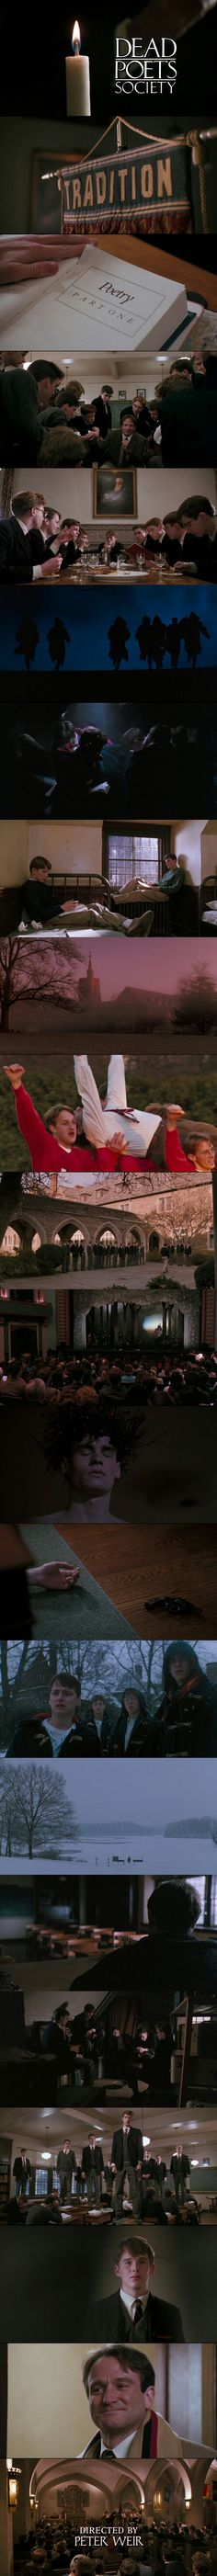 Dead Poets Society (1989) Directed by Peter Weir. Starring Robin Williams, Robert Sean Leonard, Ethan Hawke and....